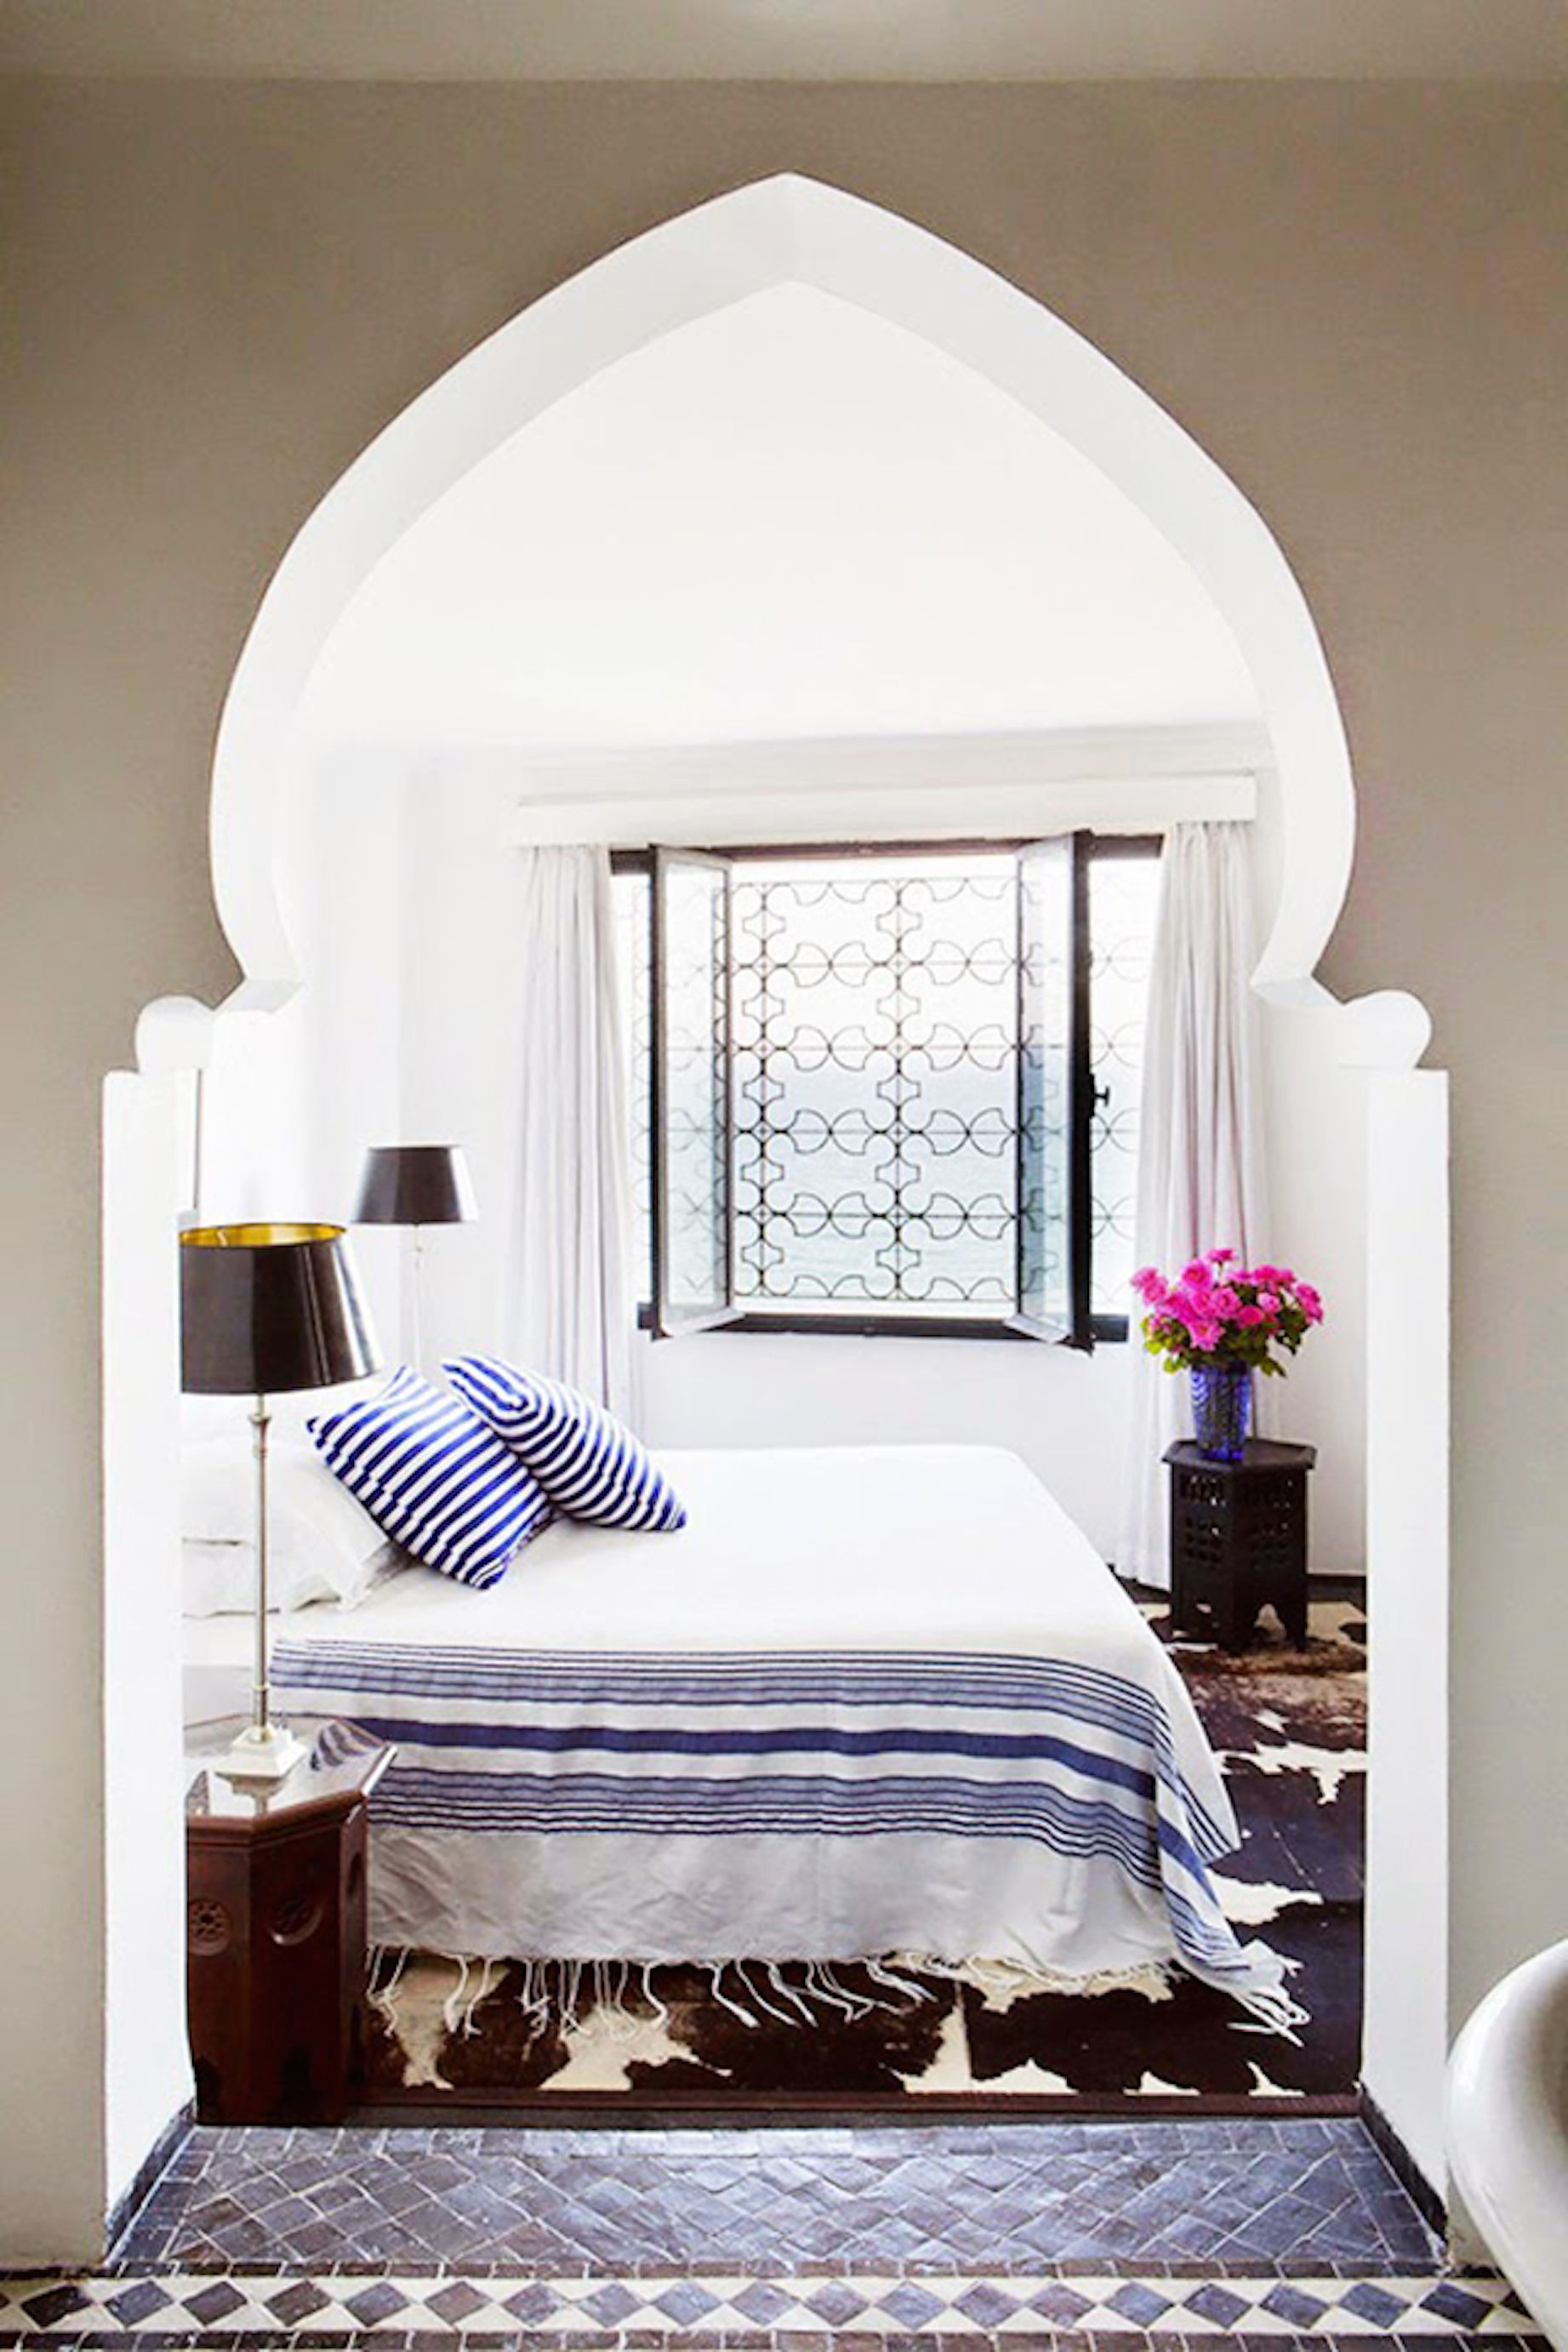 Tanger House   style bohème   Pinterest   House, Bedrooms and Master ...